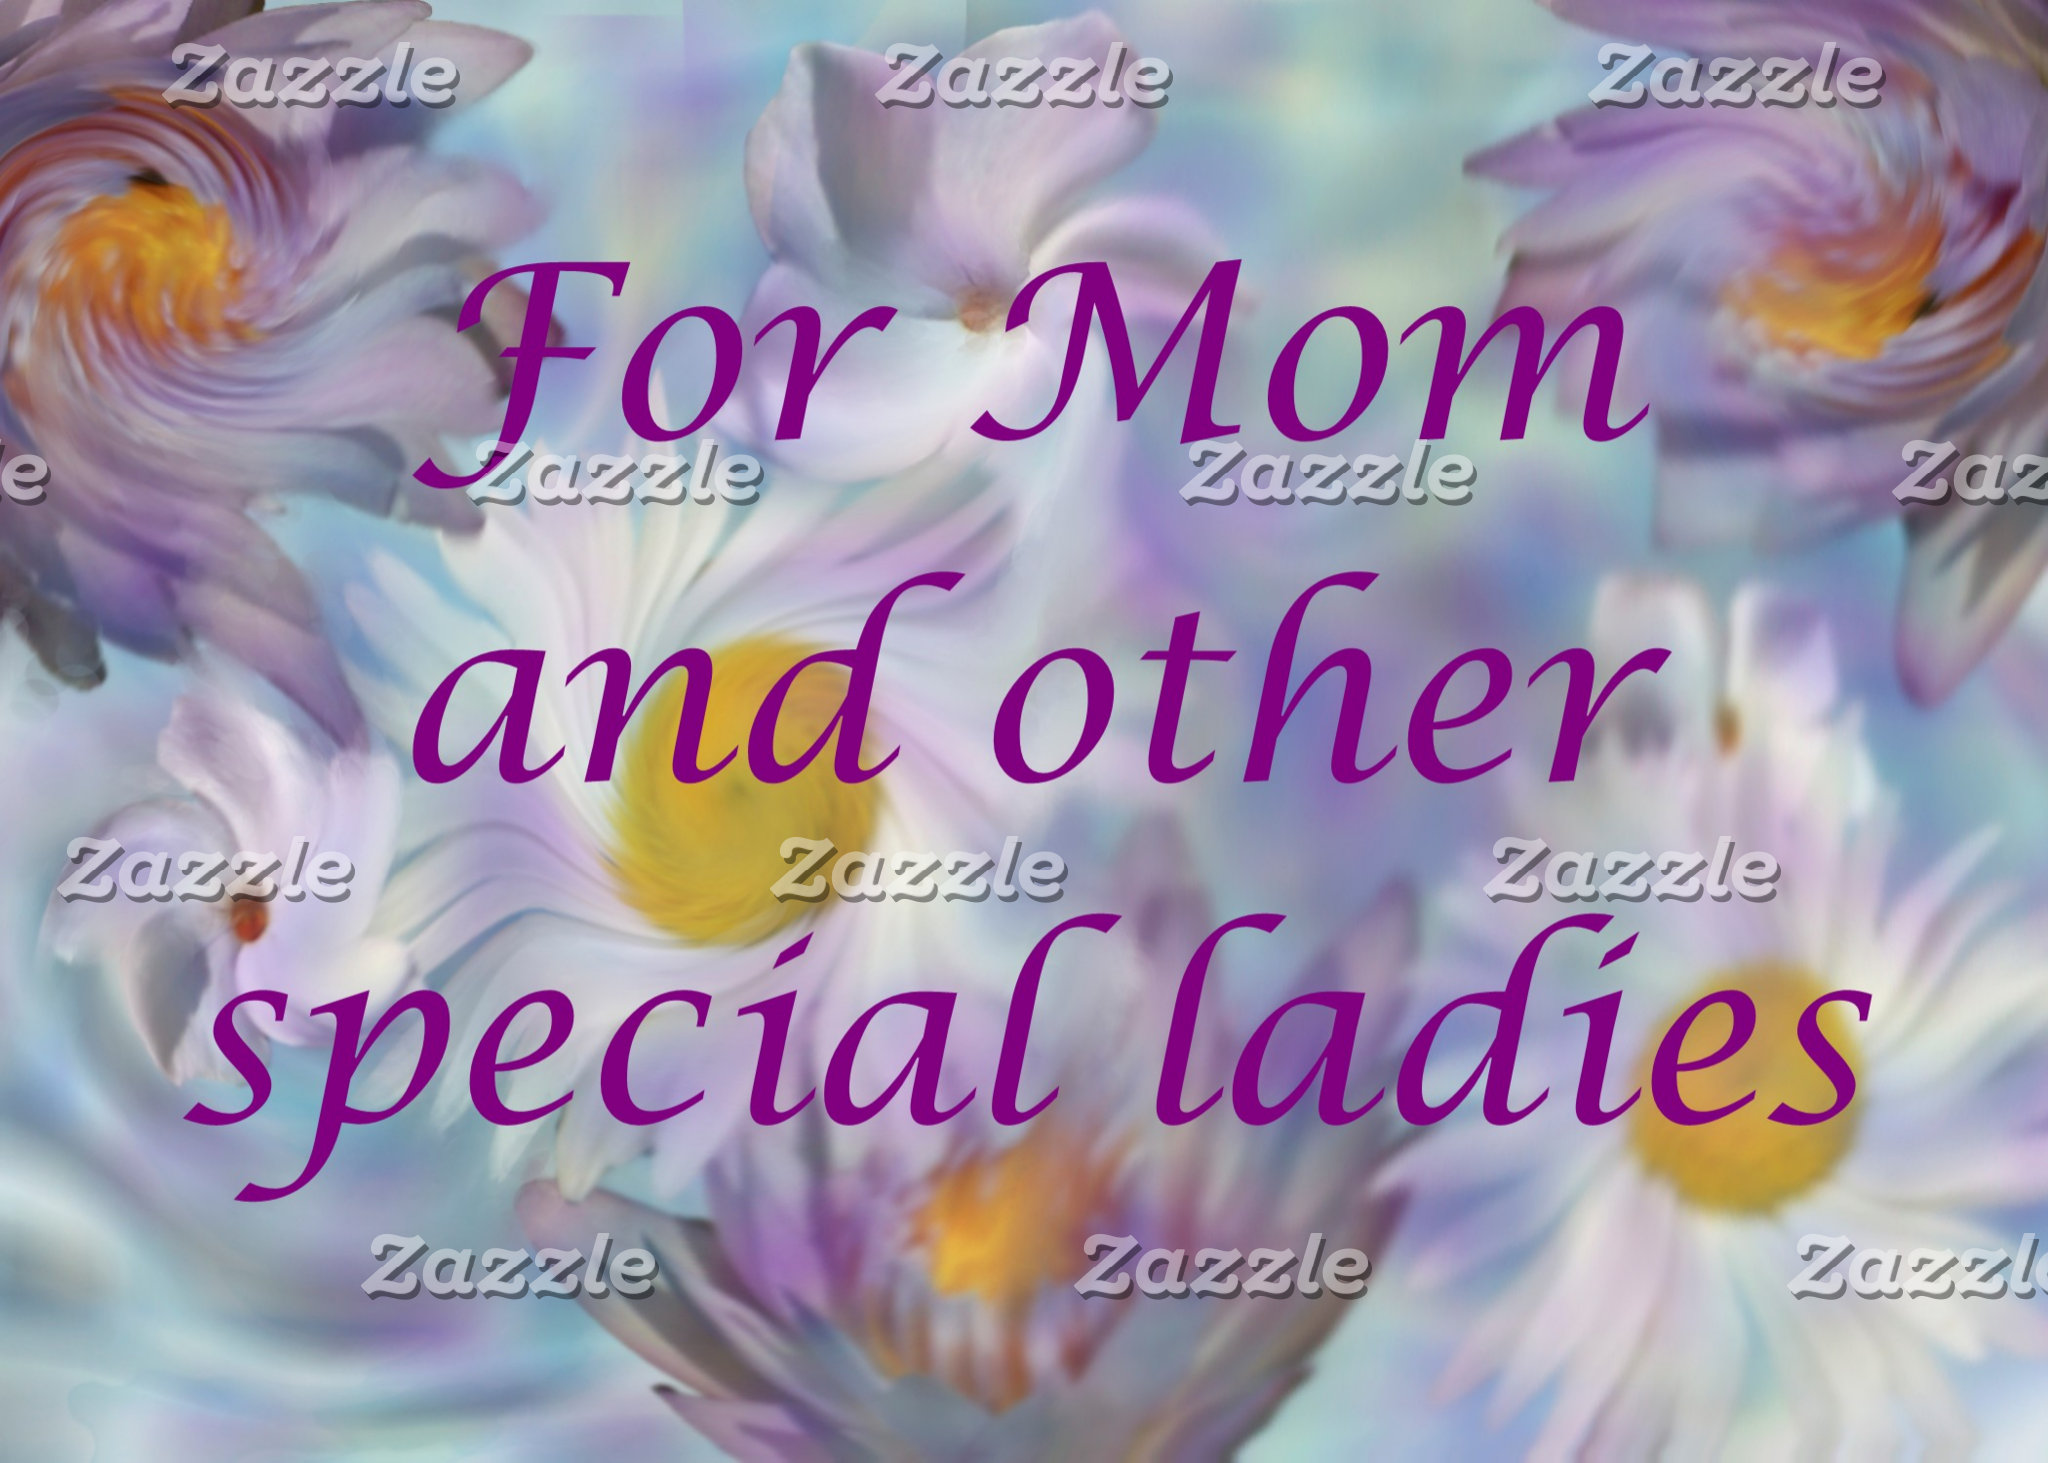 For Mom and other Special Ladies